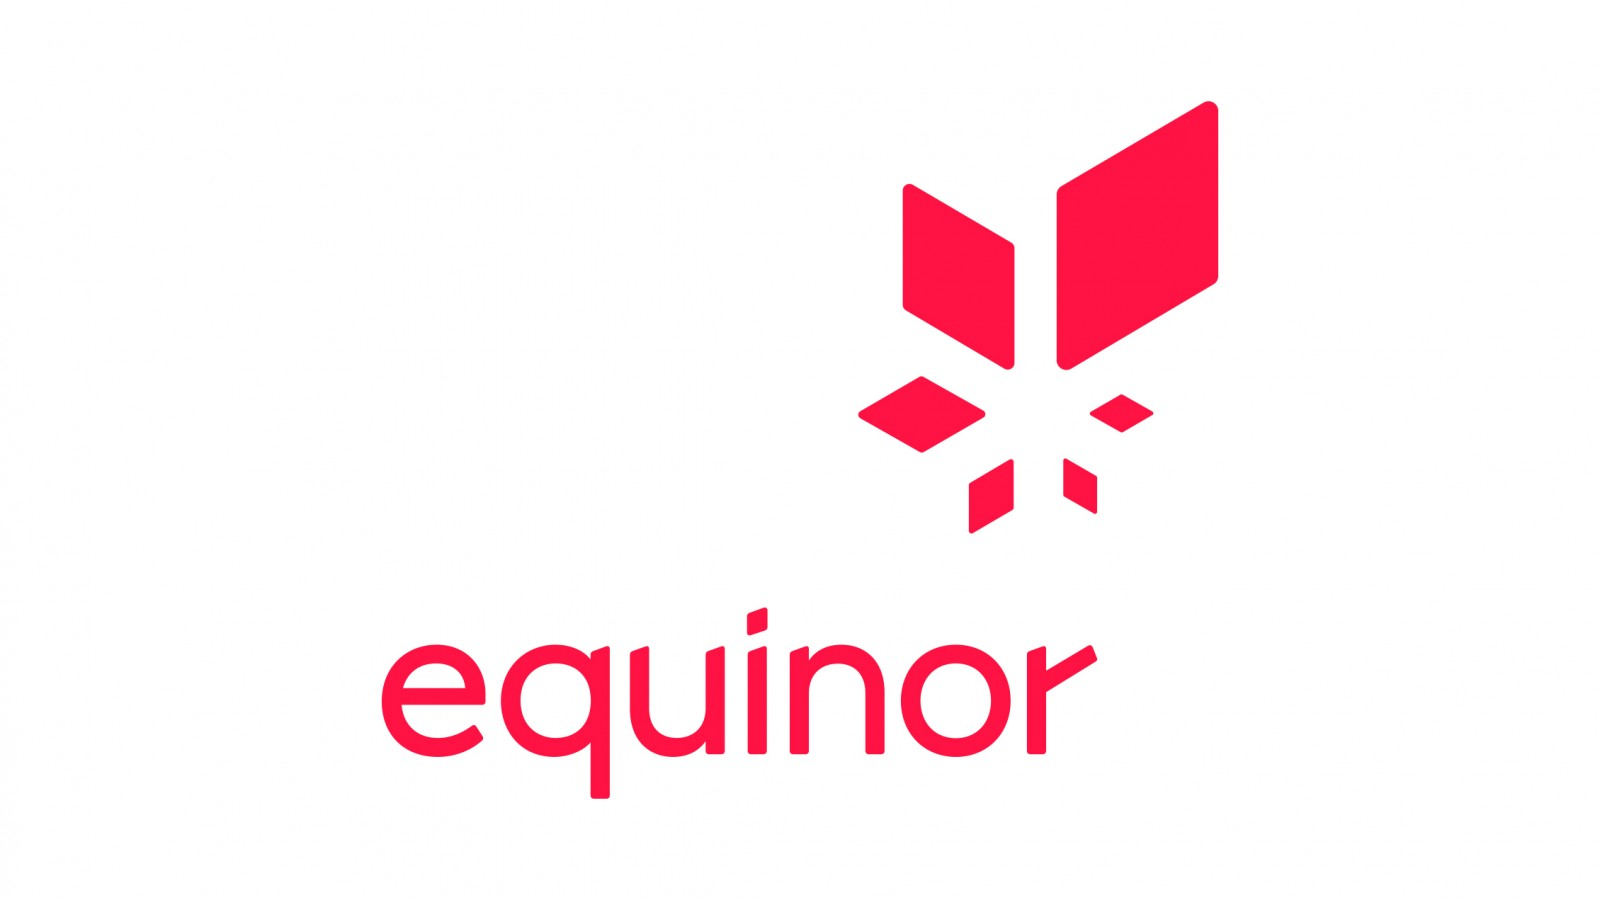 Equinor ASA - Our ambition is to be the world's most carbon-efficient oil and gas producer, as well as driving innovation in offshore wind and renewables.Website